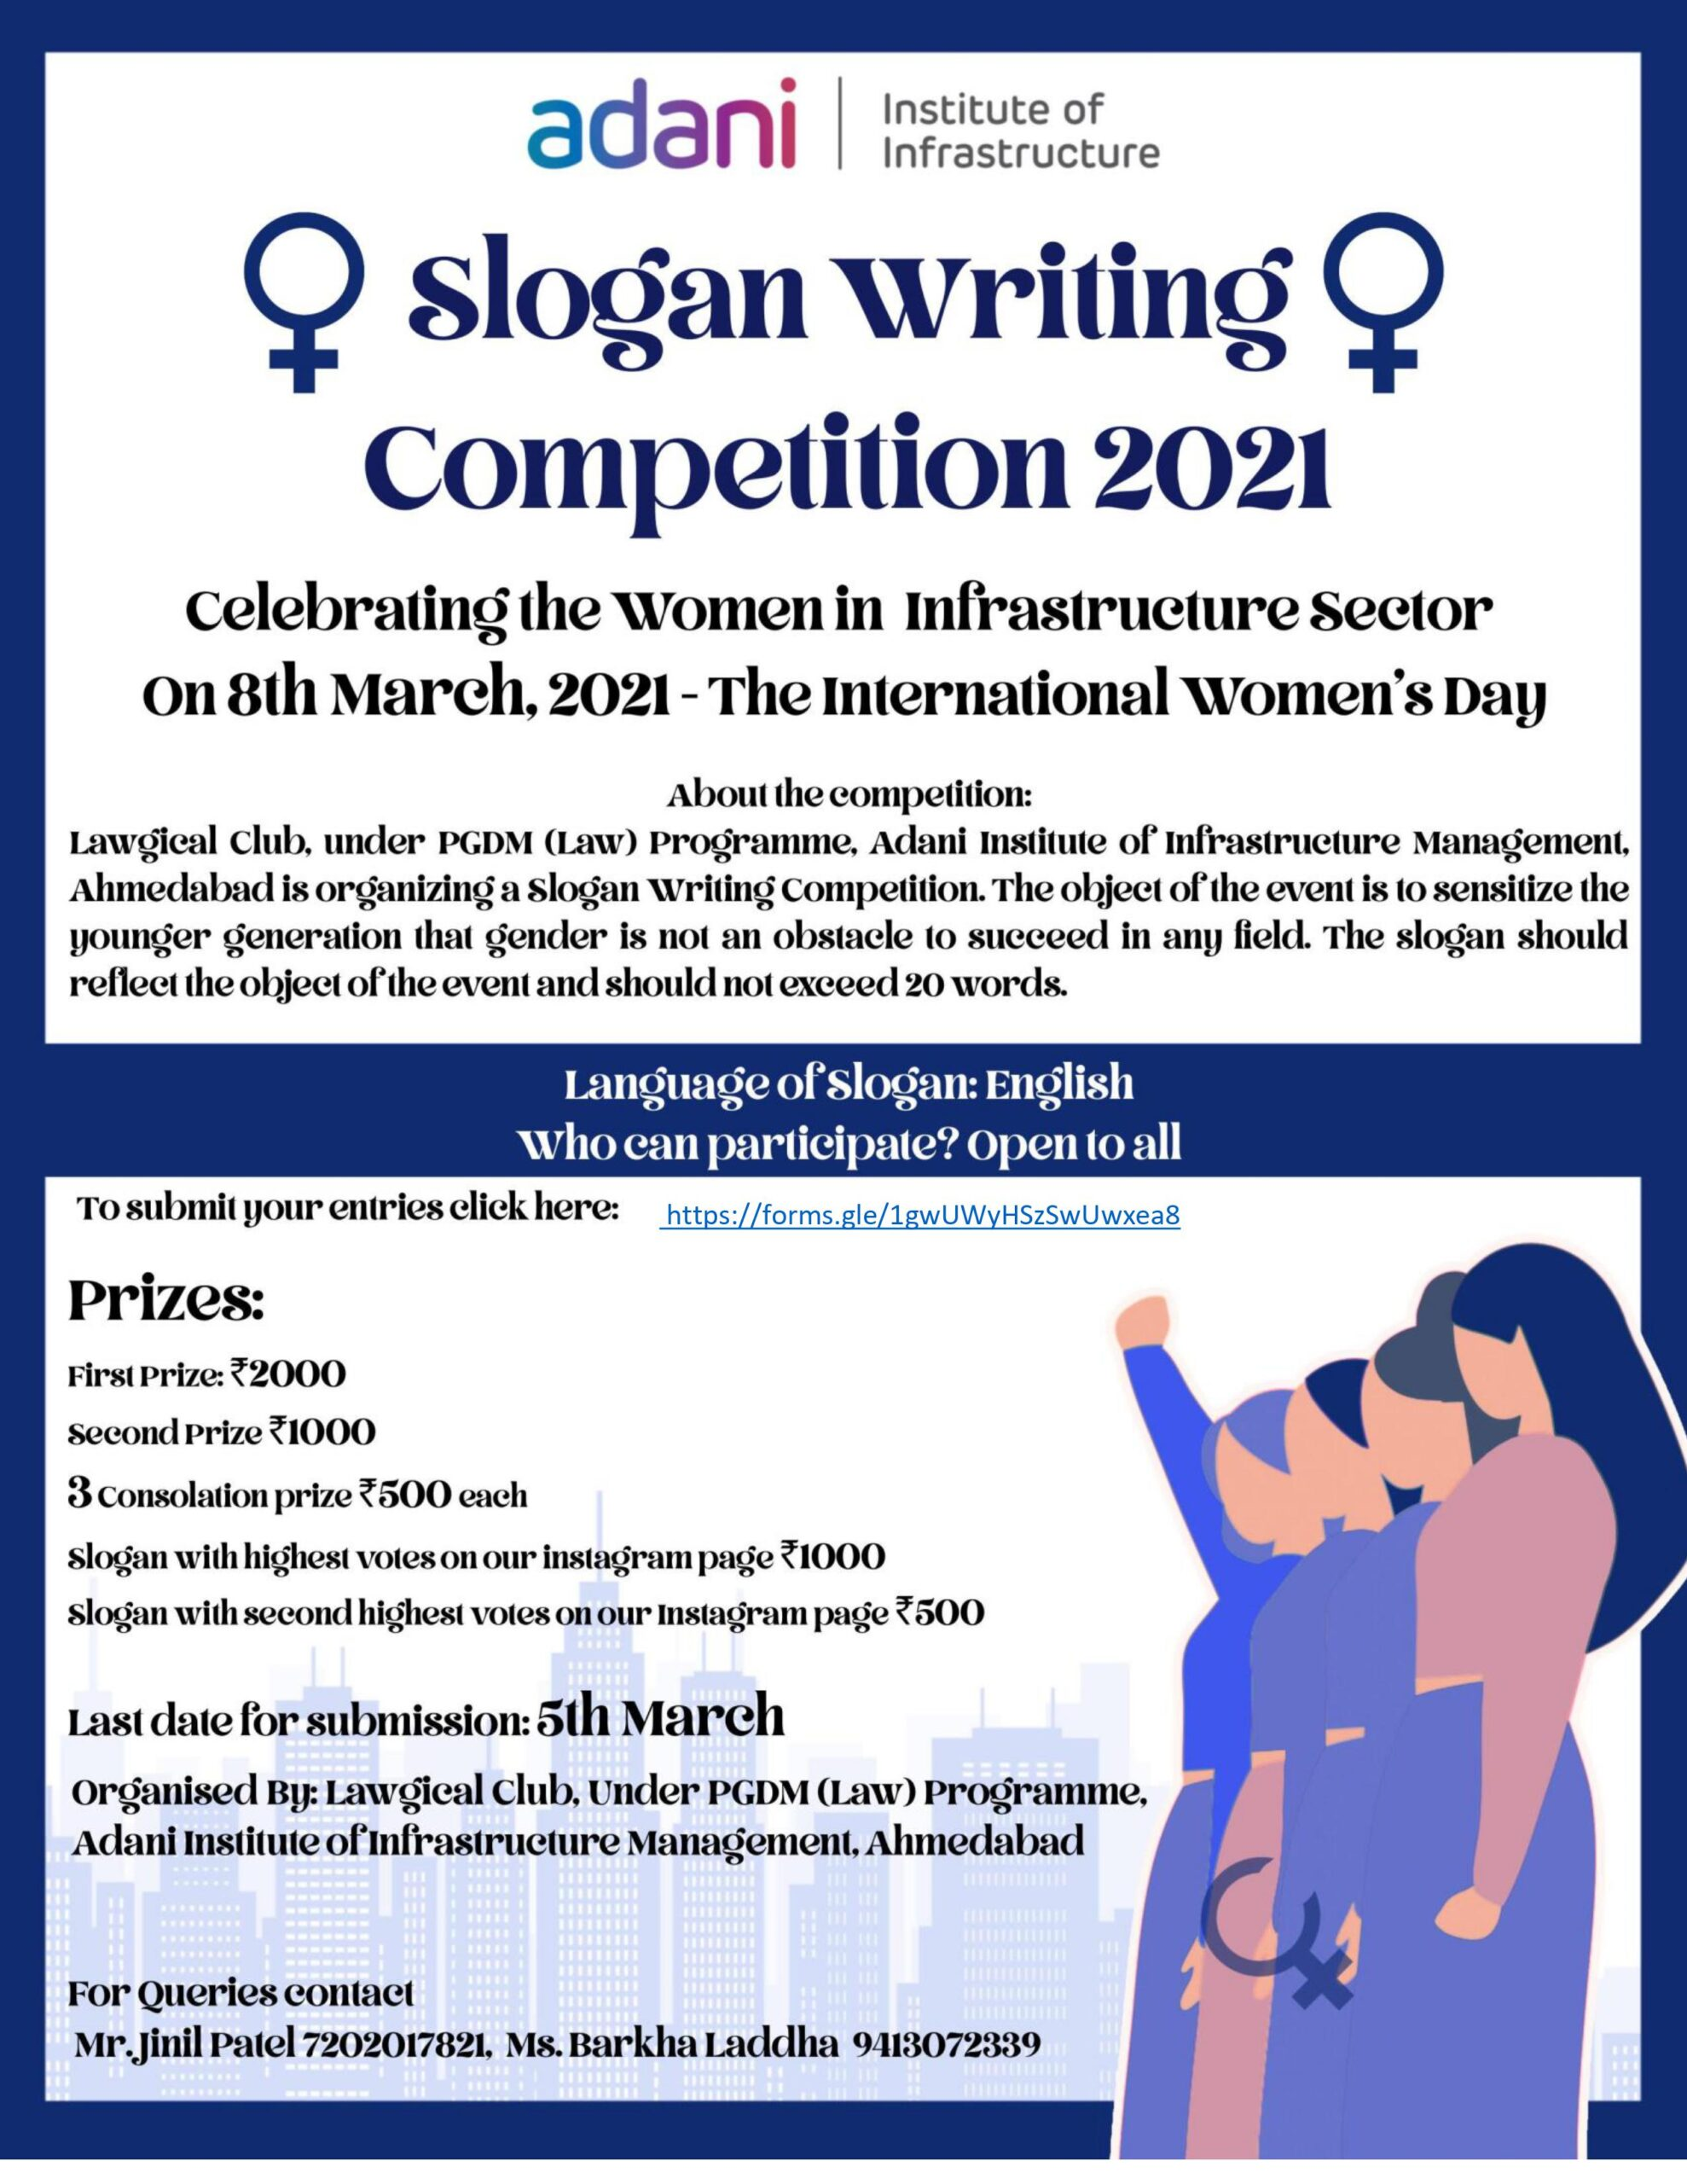 adani infrasructure slogan writing competition